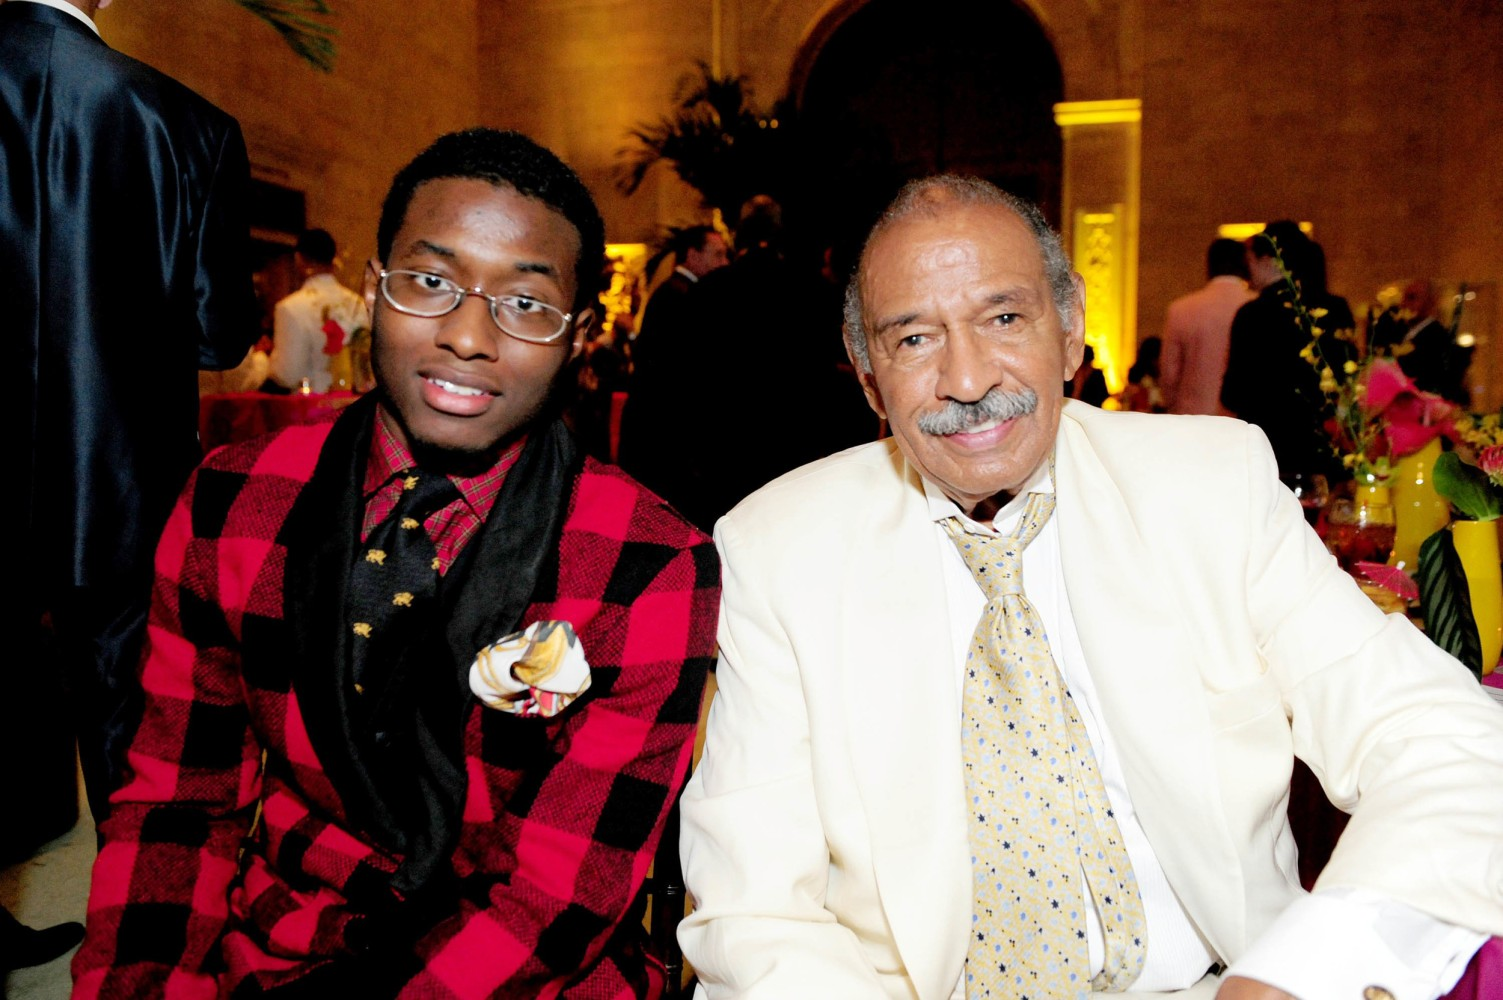 Conyers' son was arrested for earlier this year for allegedly attacking girlfriend